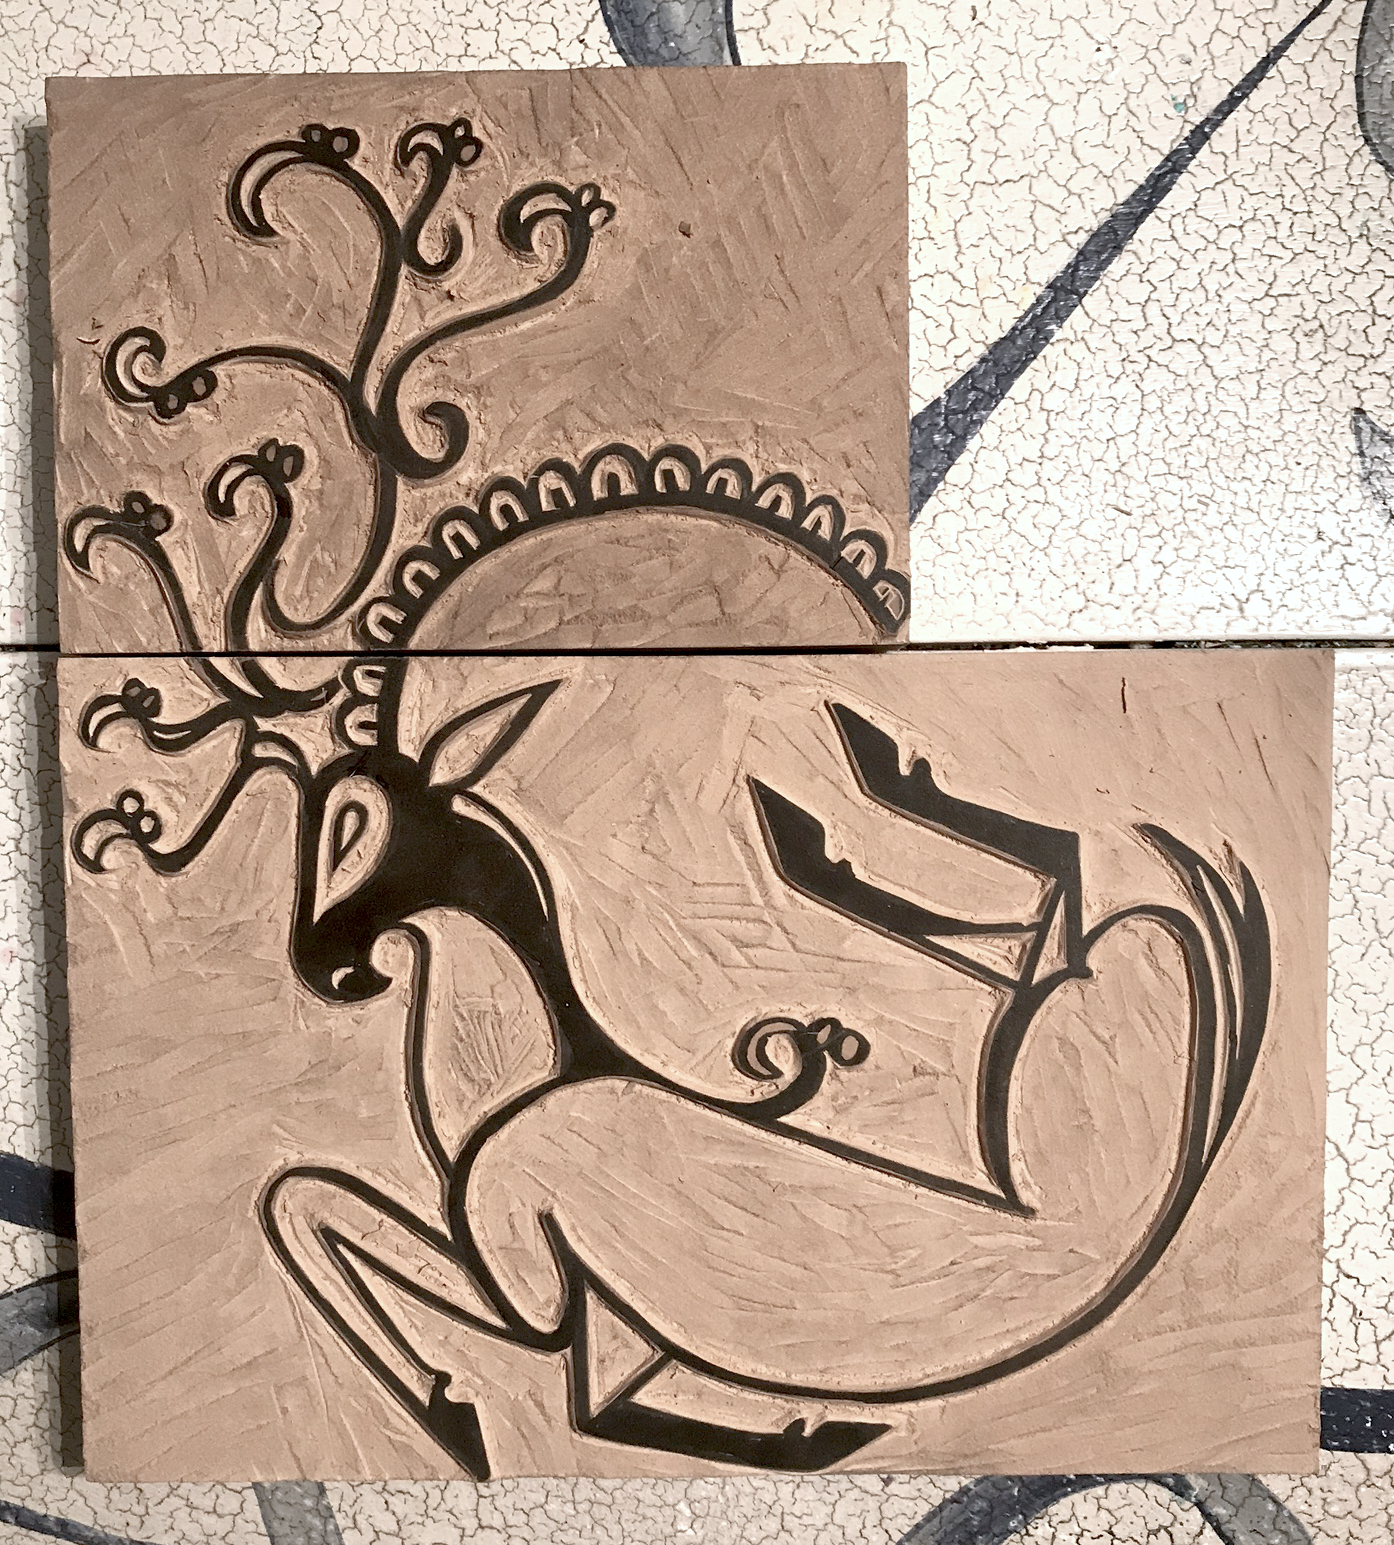 Finished Block! I went up with the horn design, instead of more to left. My initial thought was to have it be closer to the original tattoo, and have it be more of a complete circle. Ultimately I liked the implication of the circle better, and also thought I could more easily incorporate other blocks I have into the design. For example I could do a set of fern prints in the negative space to have a woodland feel, then switch it out for florals and have a spring vibe.